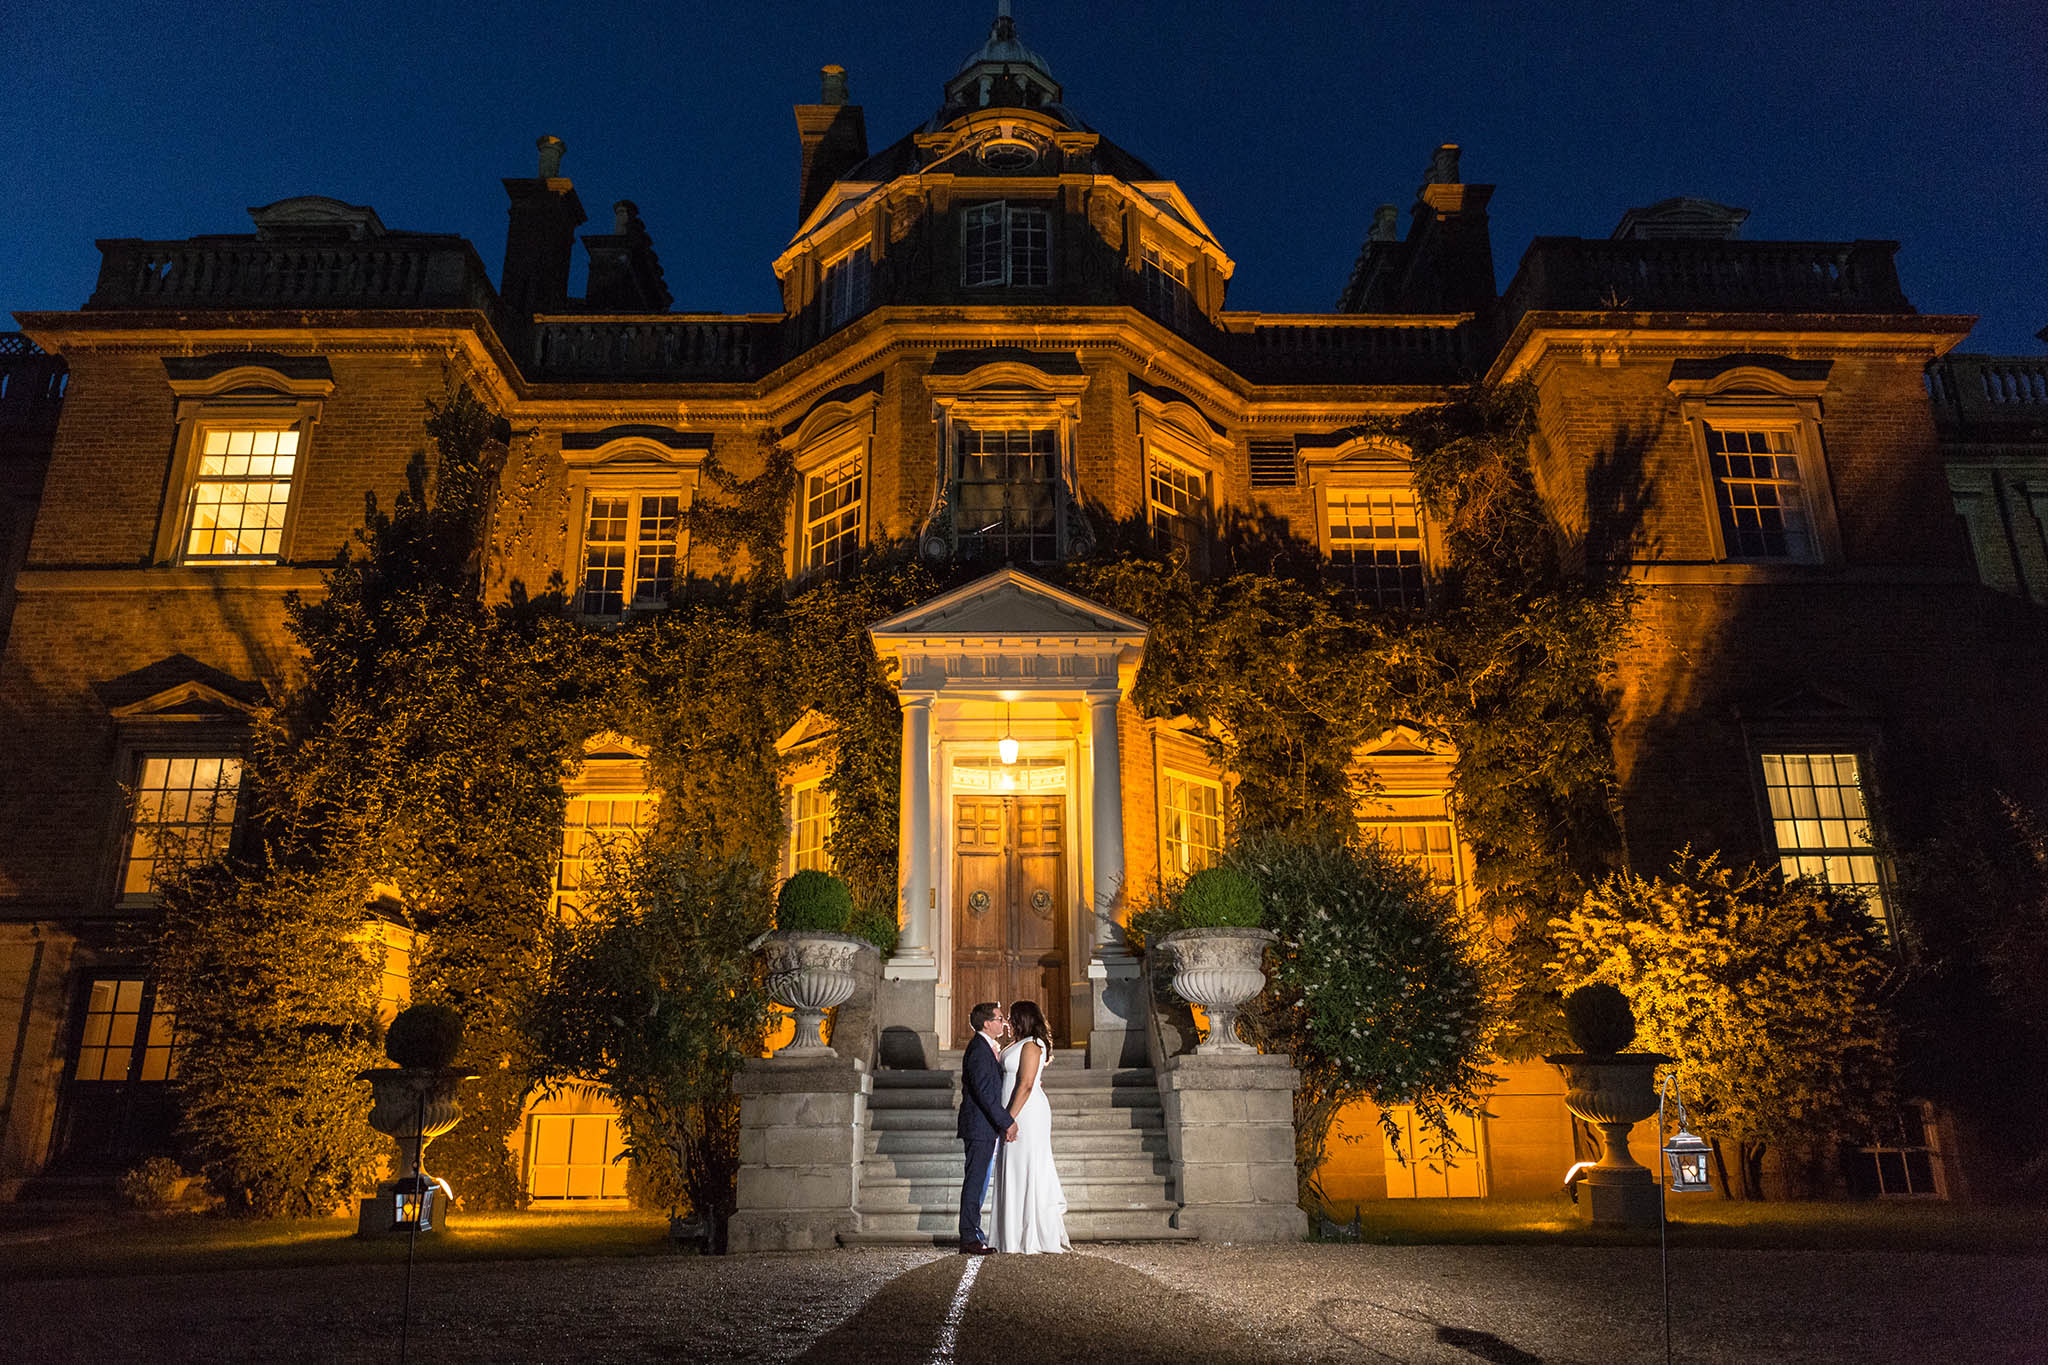 Newlyweds kiss in front of a lit up Hampton Court House at night